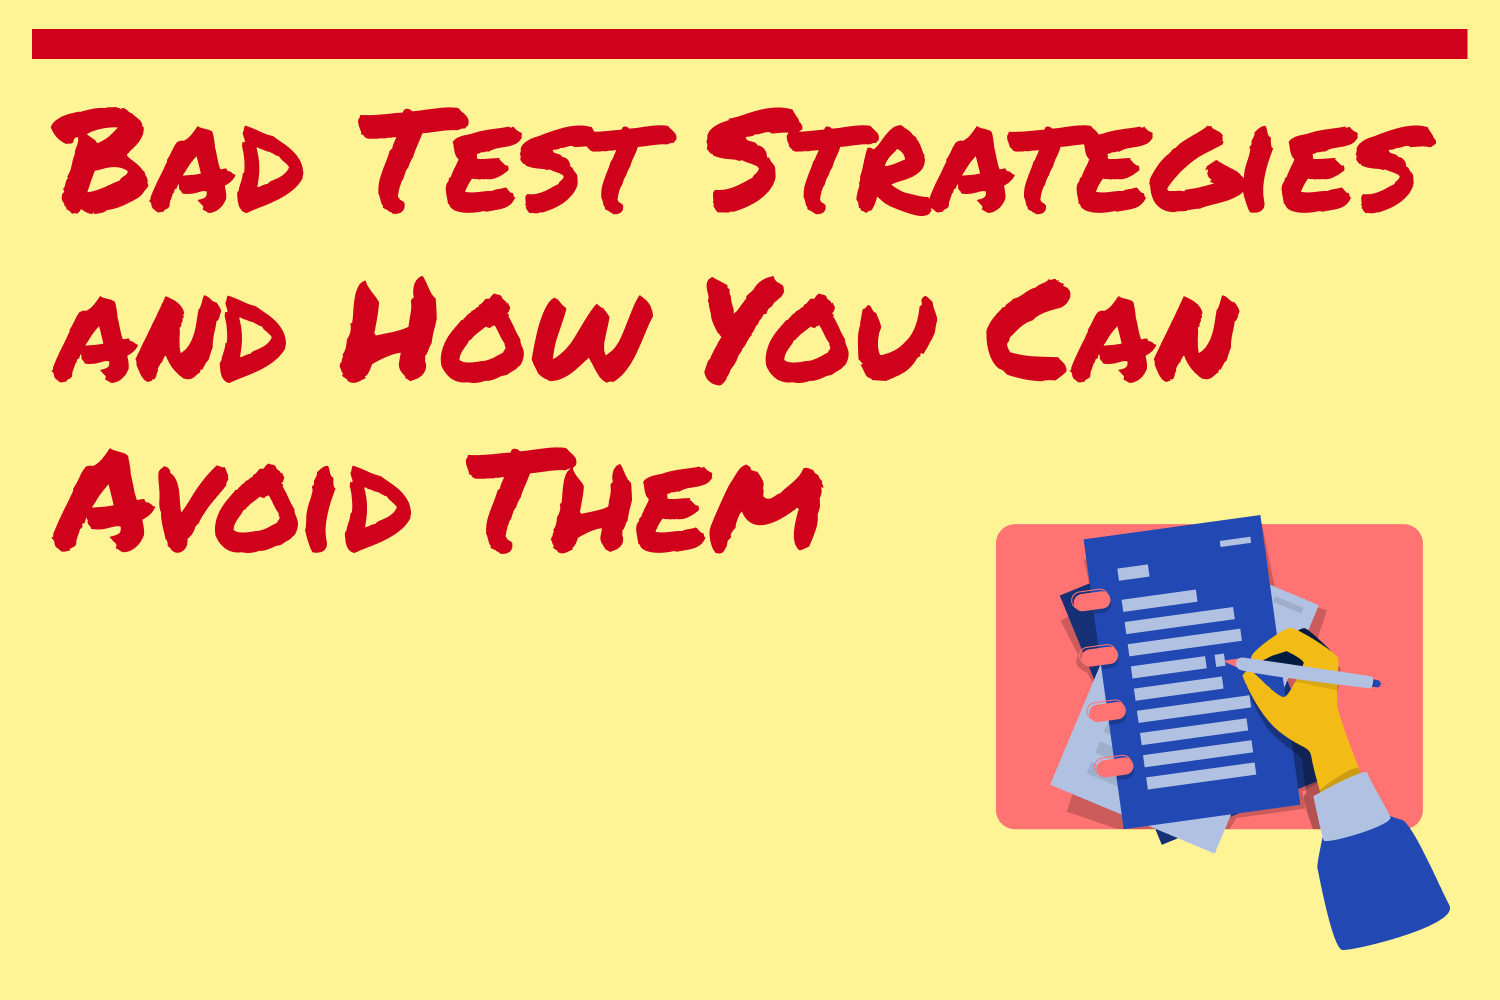 Bad Test Strategies and How You Can Avoid Them